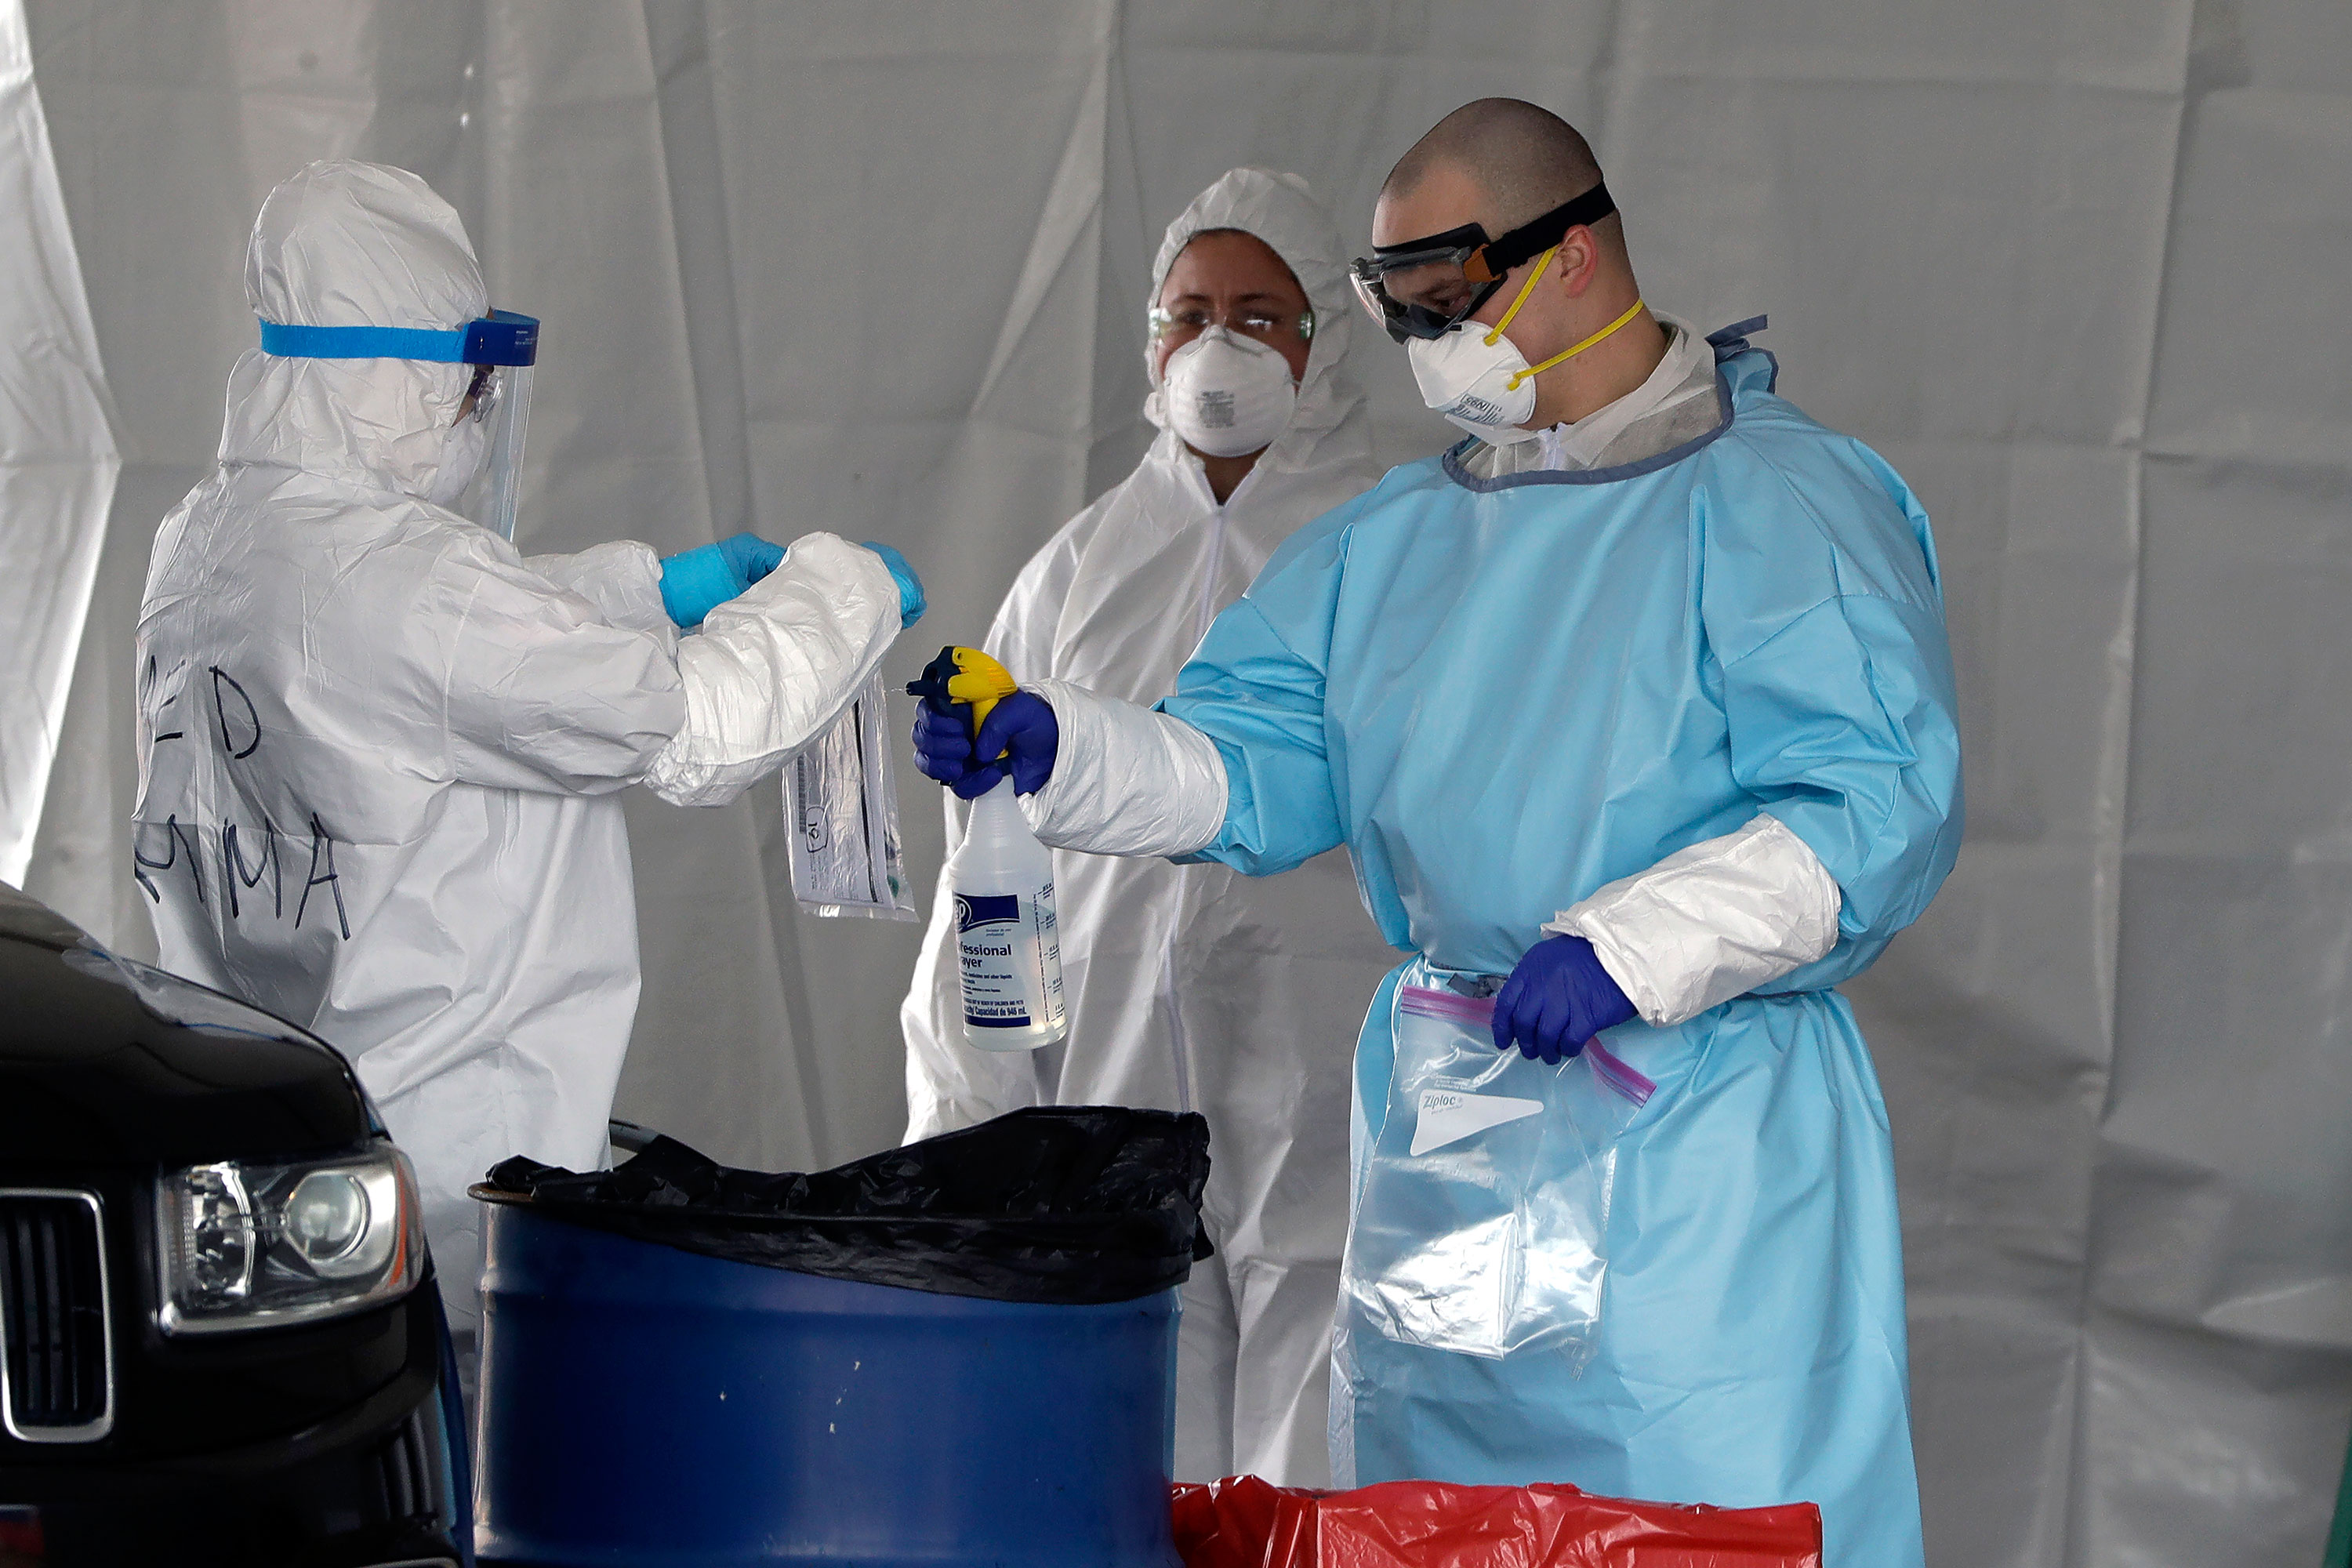 Medical workers spray a bag containing a coronavirus test at a drive-through testing site in Foxborough, Massachusetts, on April 5.